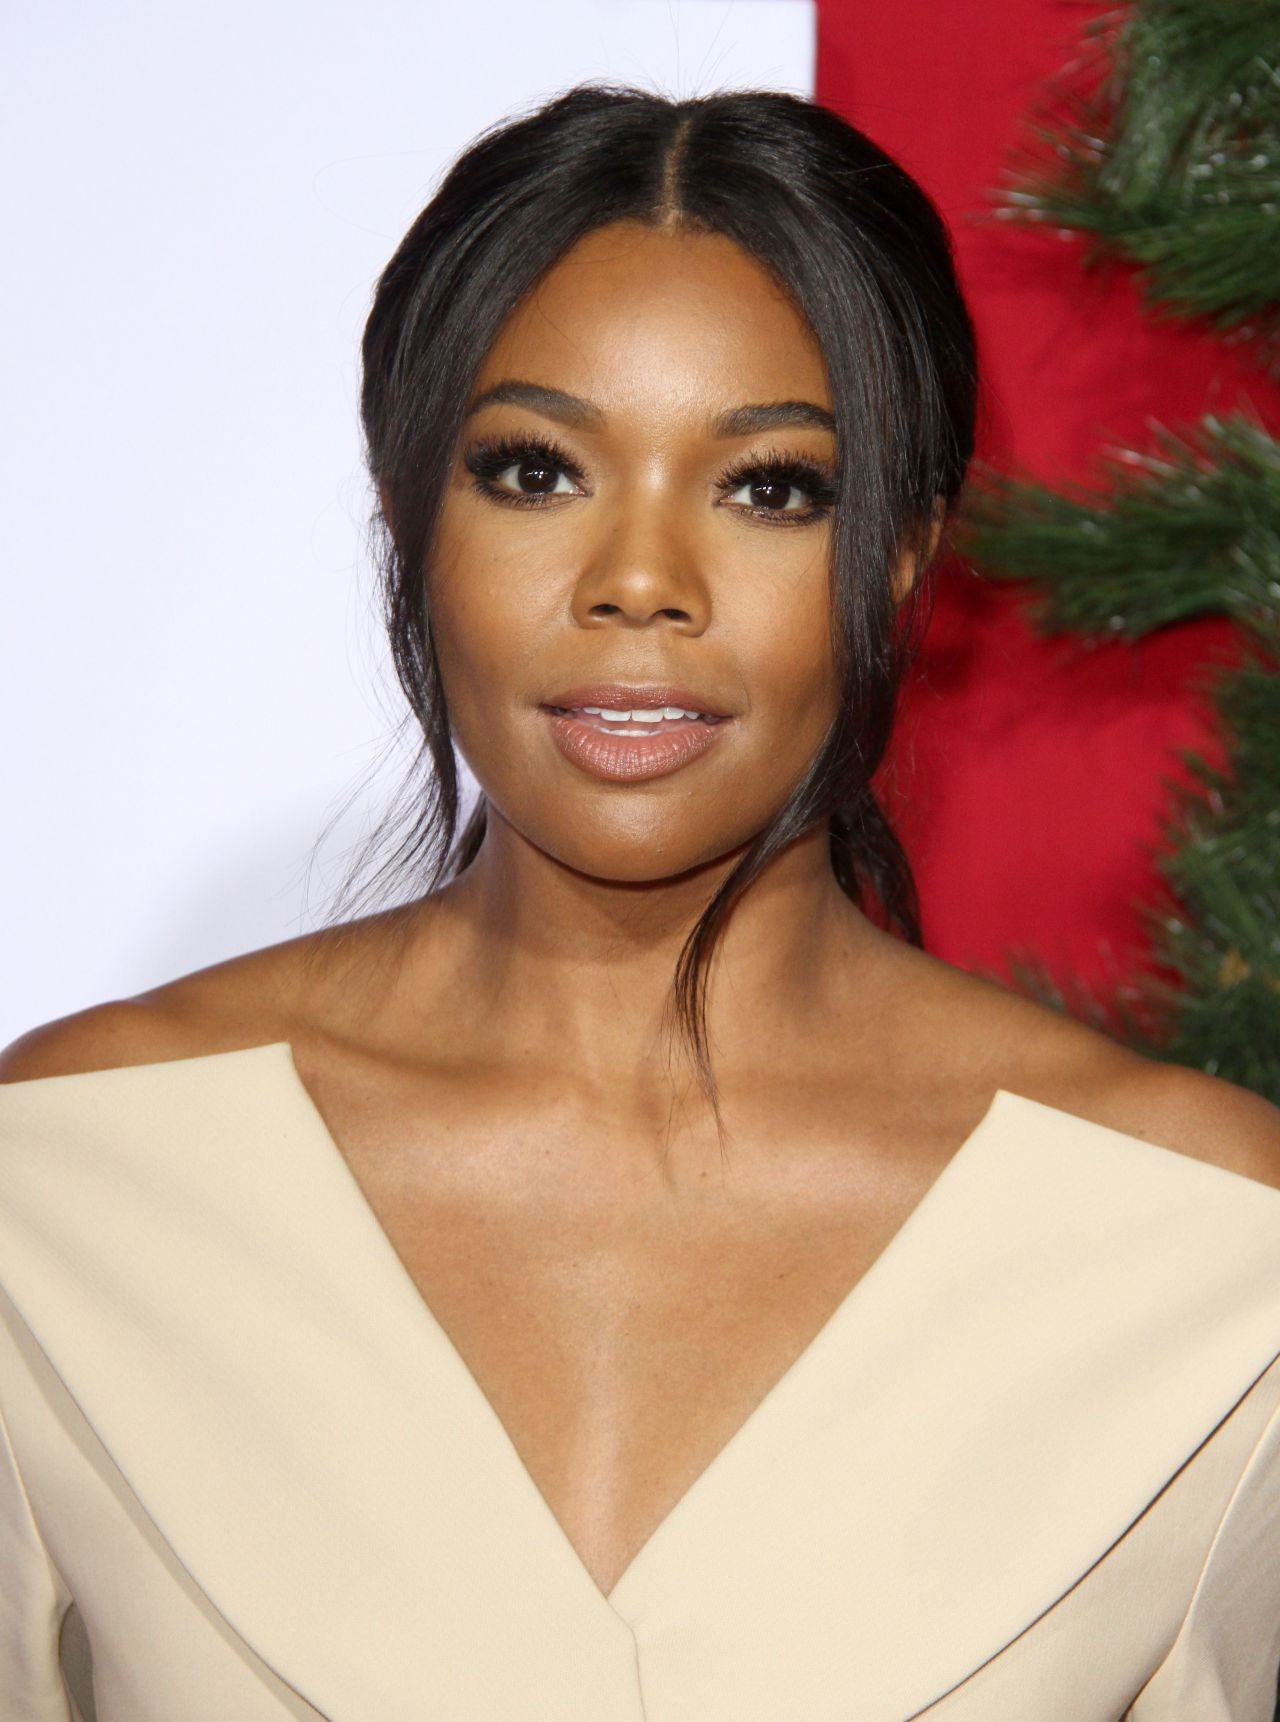 Almost Christmas Gabrielle Union.Gabrielle Union Almost Christmas Premiere In Westwood 11